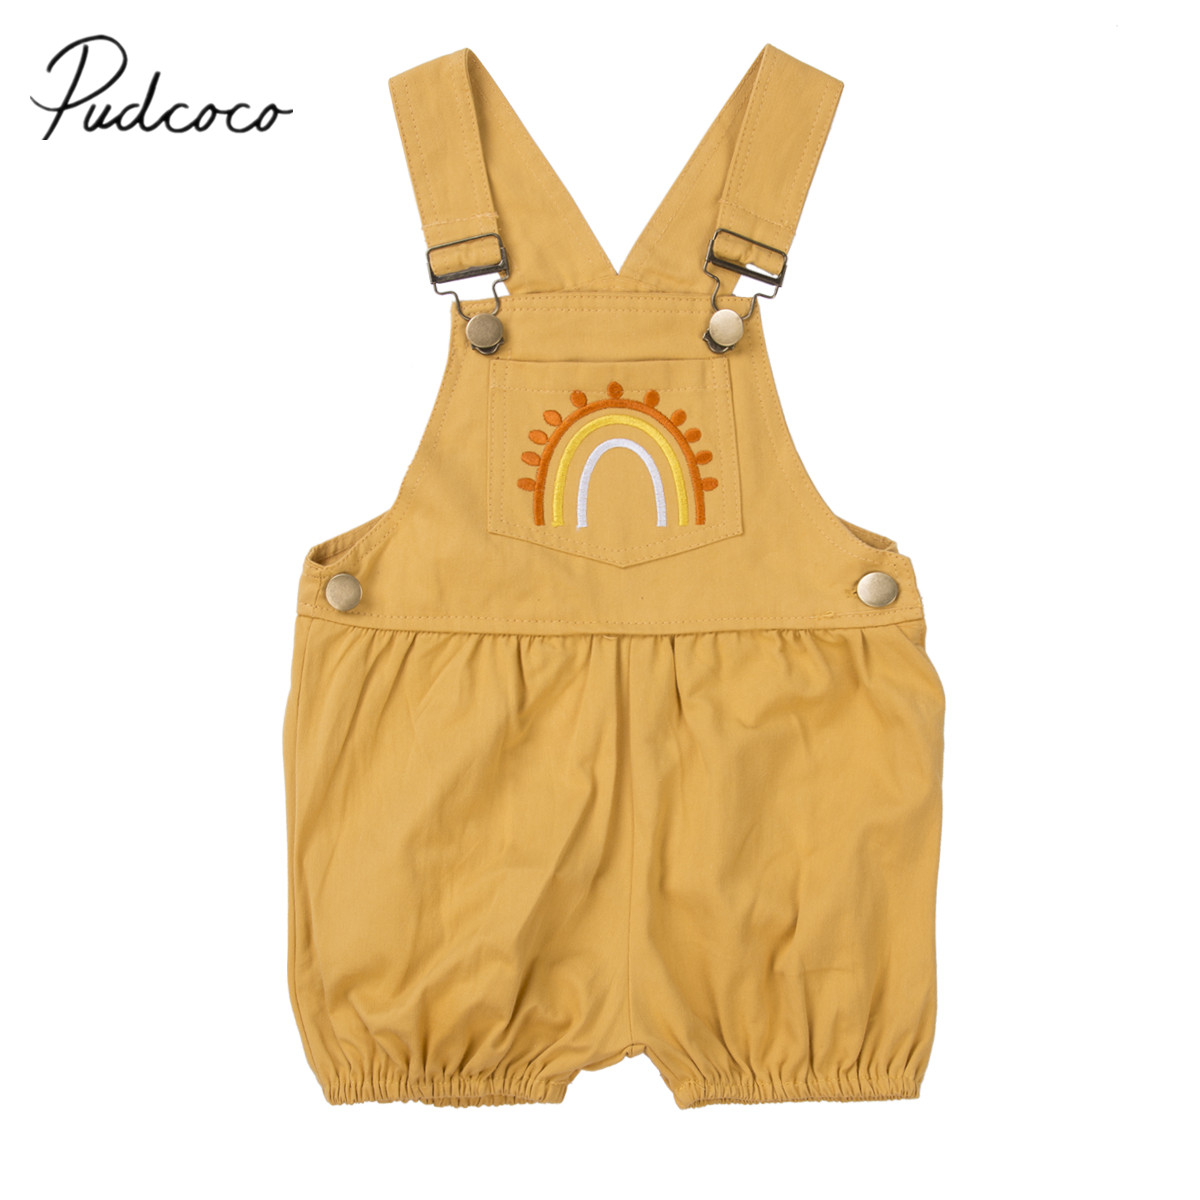 2020 Baby Summer Clothing Cute Toddler Kid Baby Girl Clothes Embroidery Rainbow Romper Jumpsuit Overalls Bib Pants Outfit 6M-4T